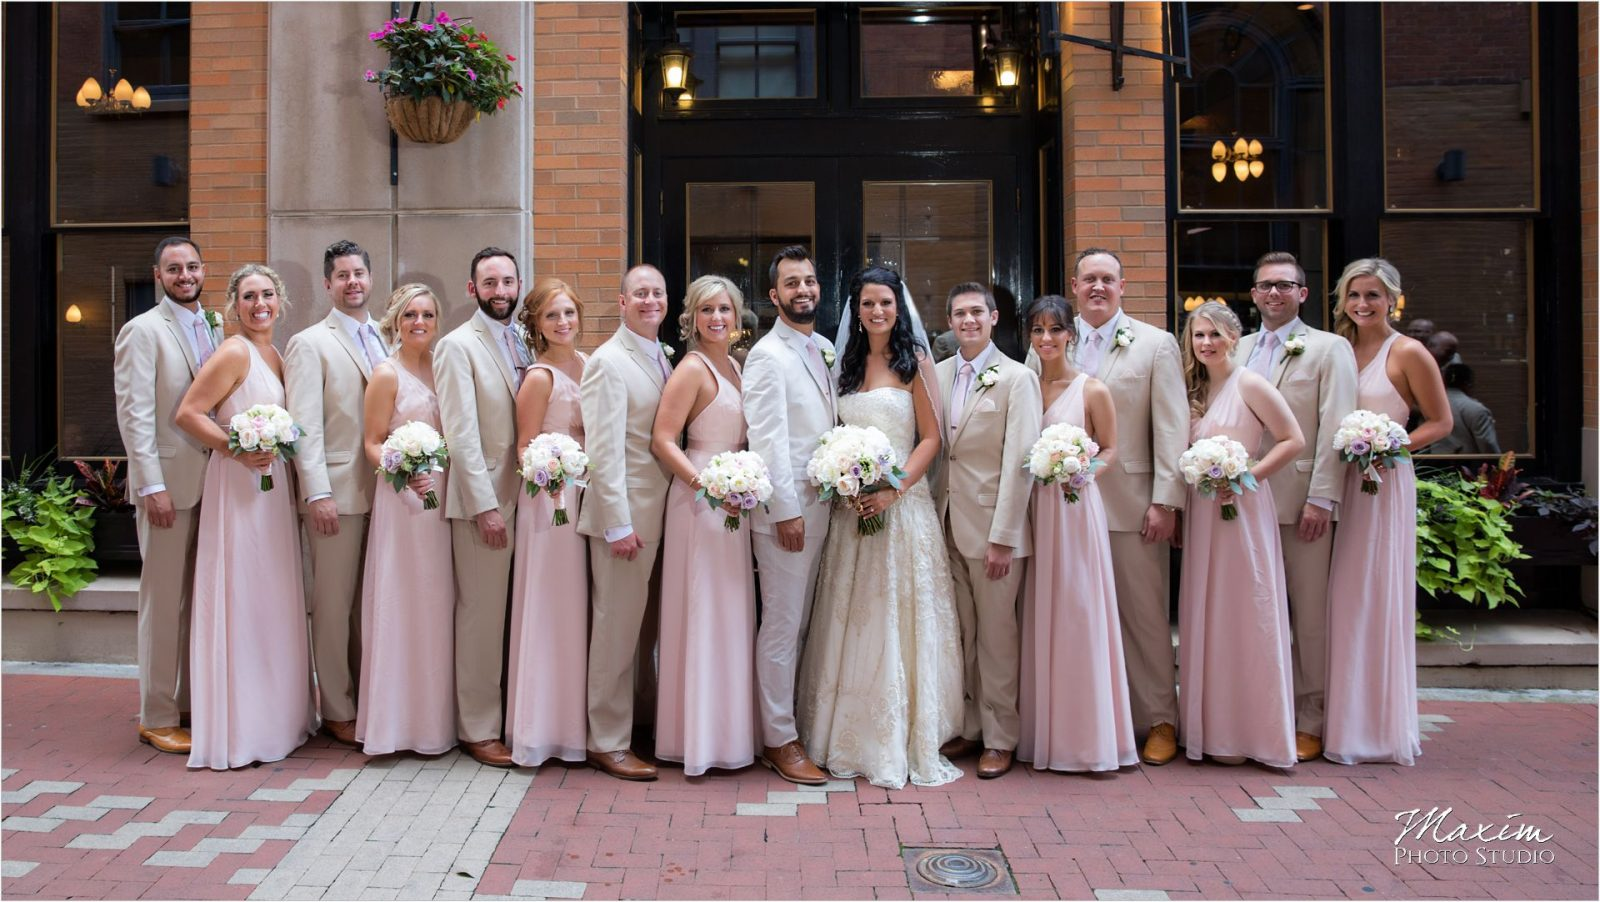 Nicholson alley Cincinnati Wedding bridal party pictures